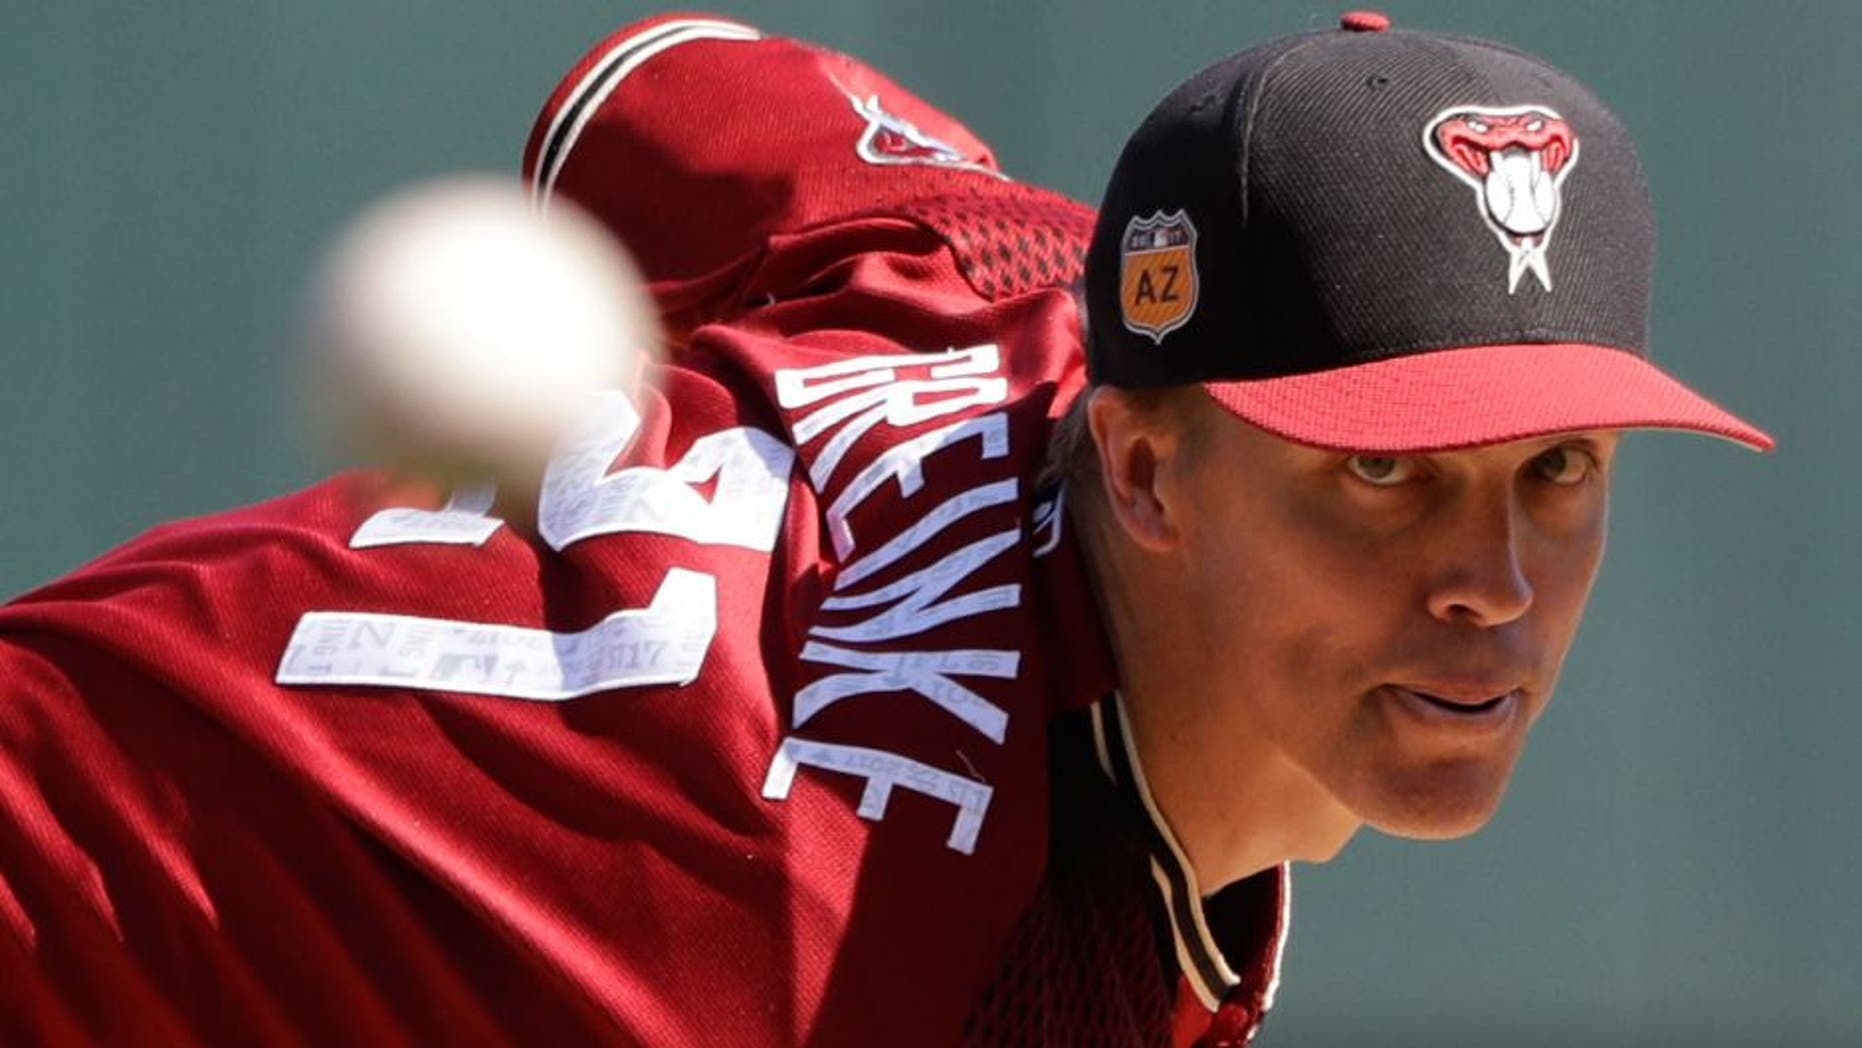 Arizona Diamondbacks' Zack Greinke throws during the first inning of an exhibition baseball game against Mexico, Wednesday, March 8, 2017, in Scottsdale, Ariz. (AP Photo/Darron Cummings)